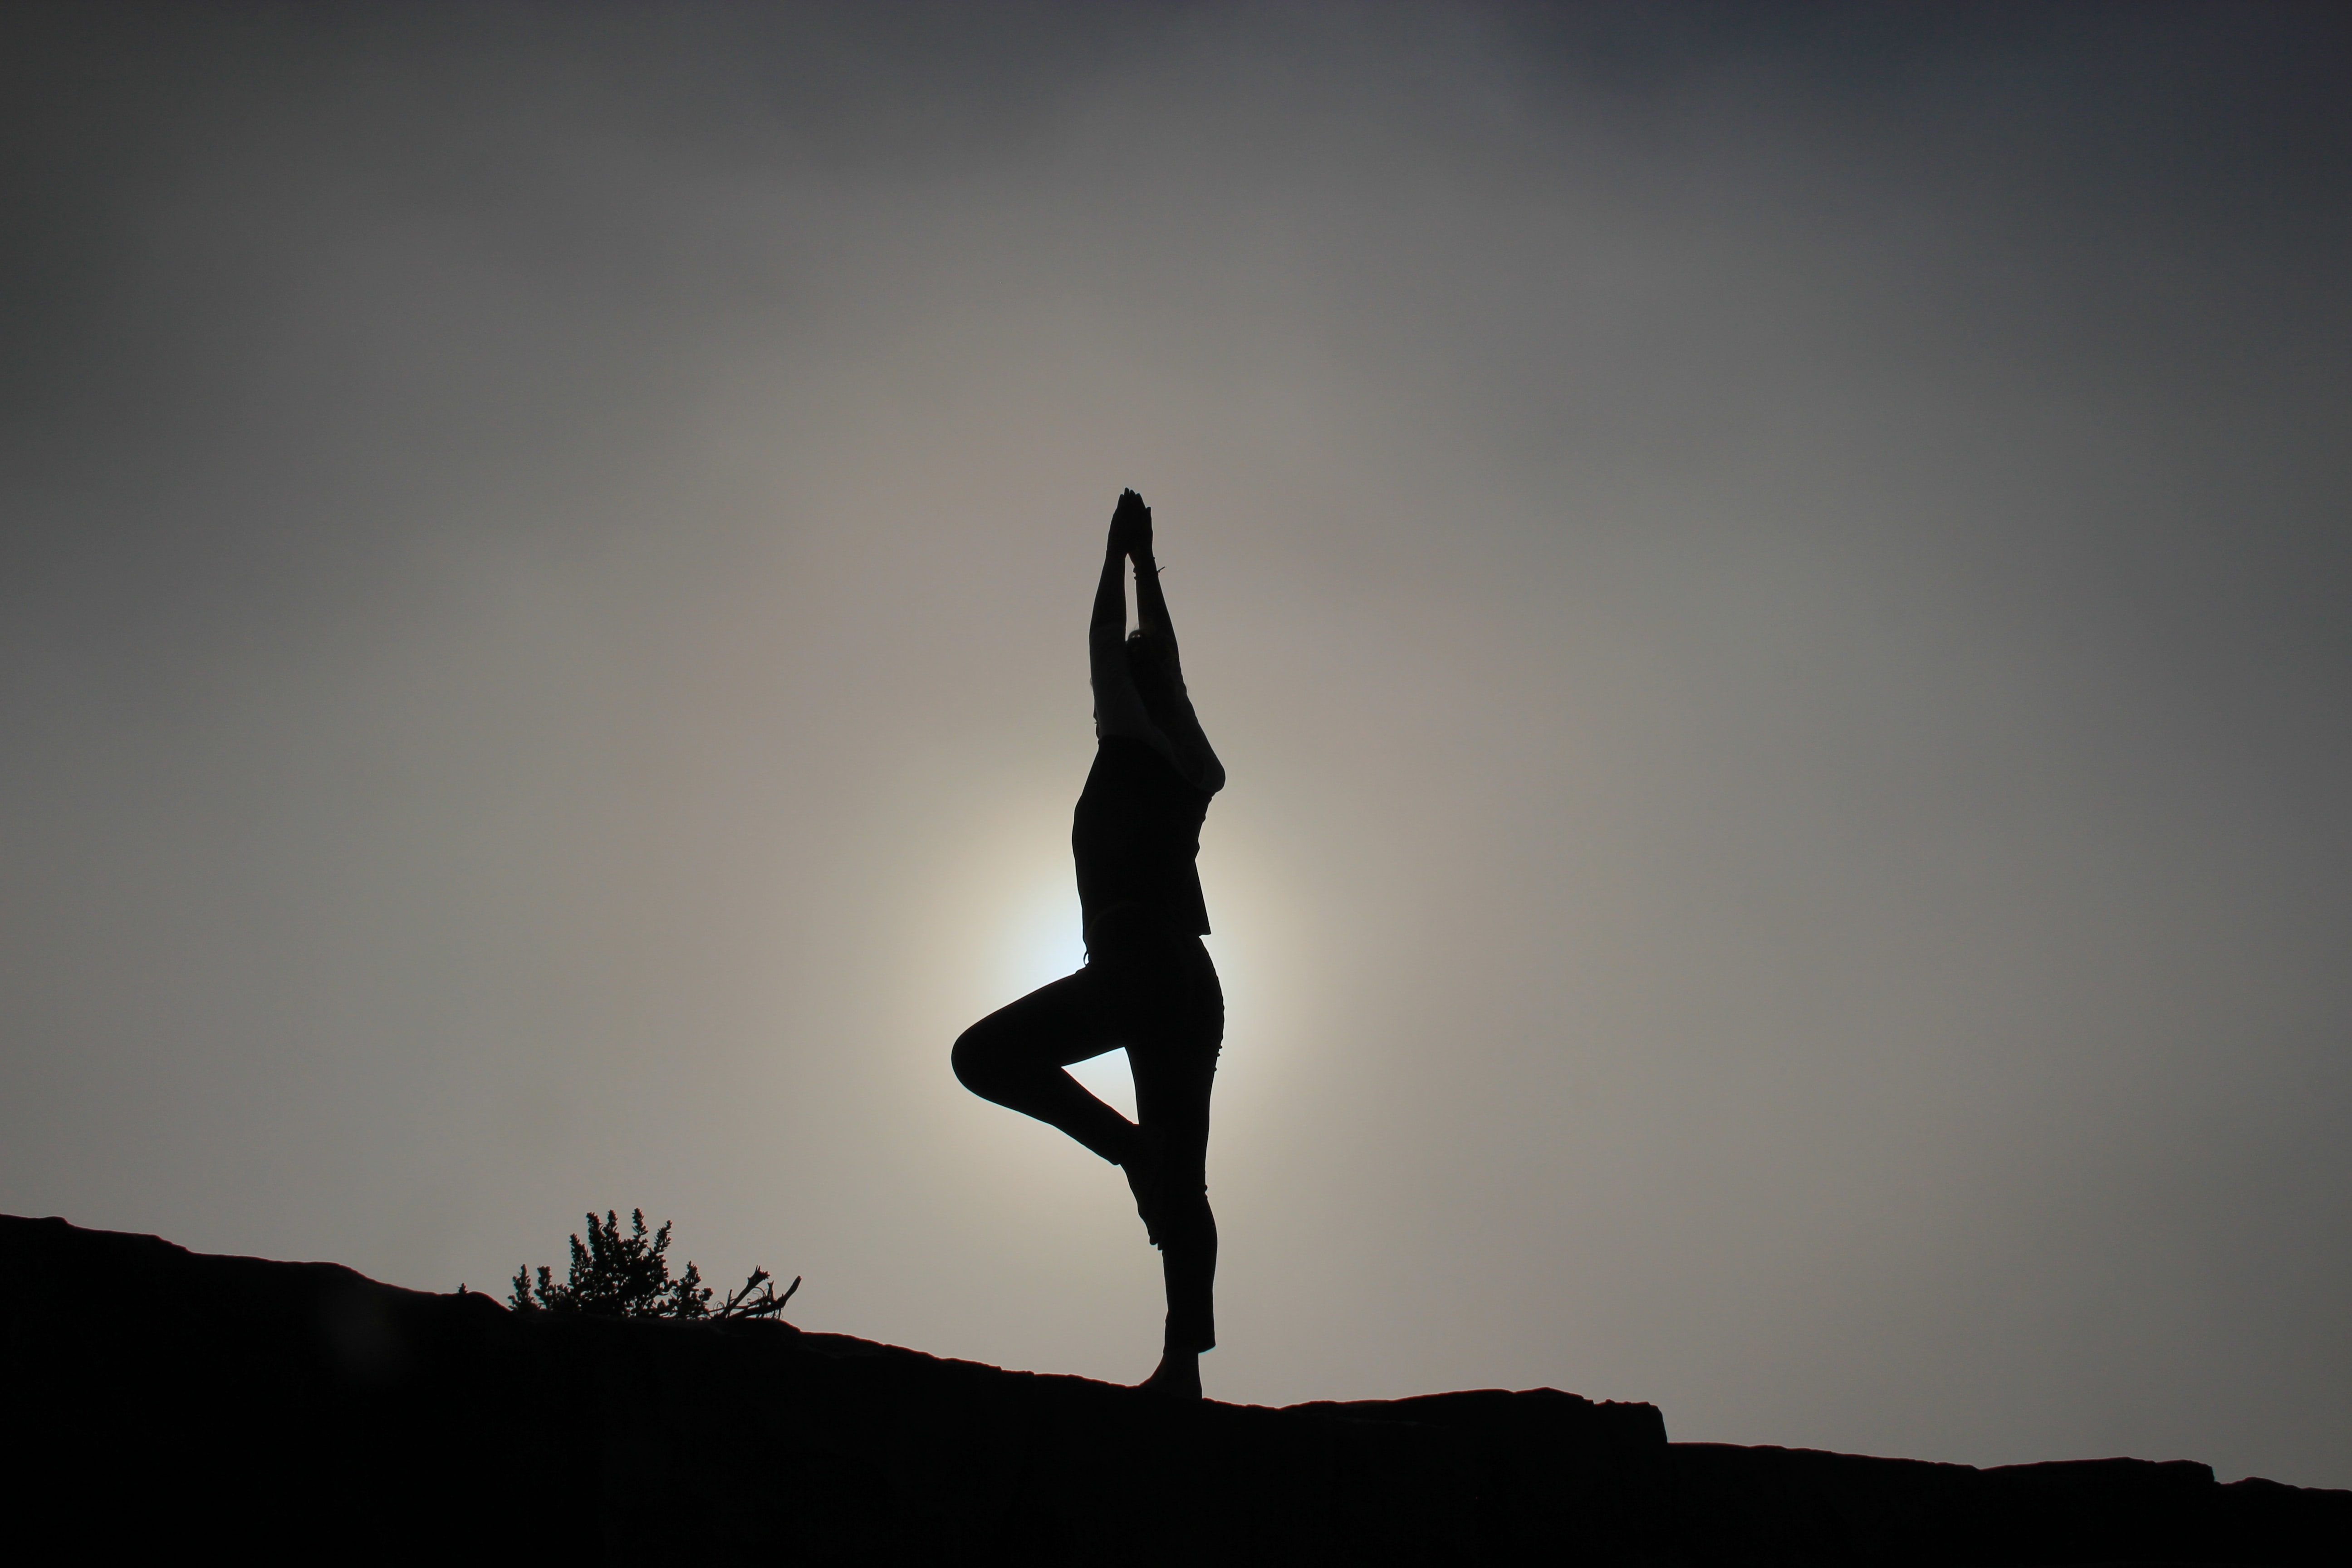 A person doing yoga on a sloping ground in silhouette